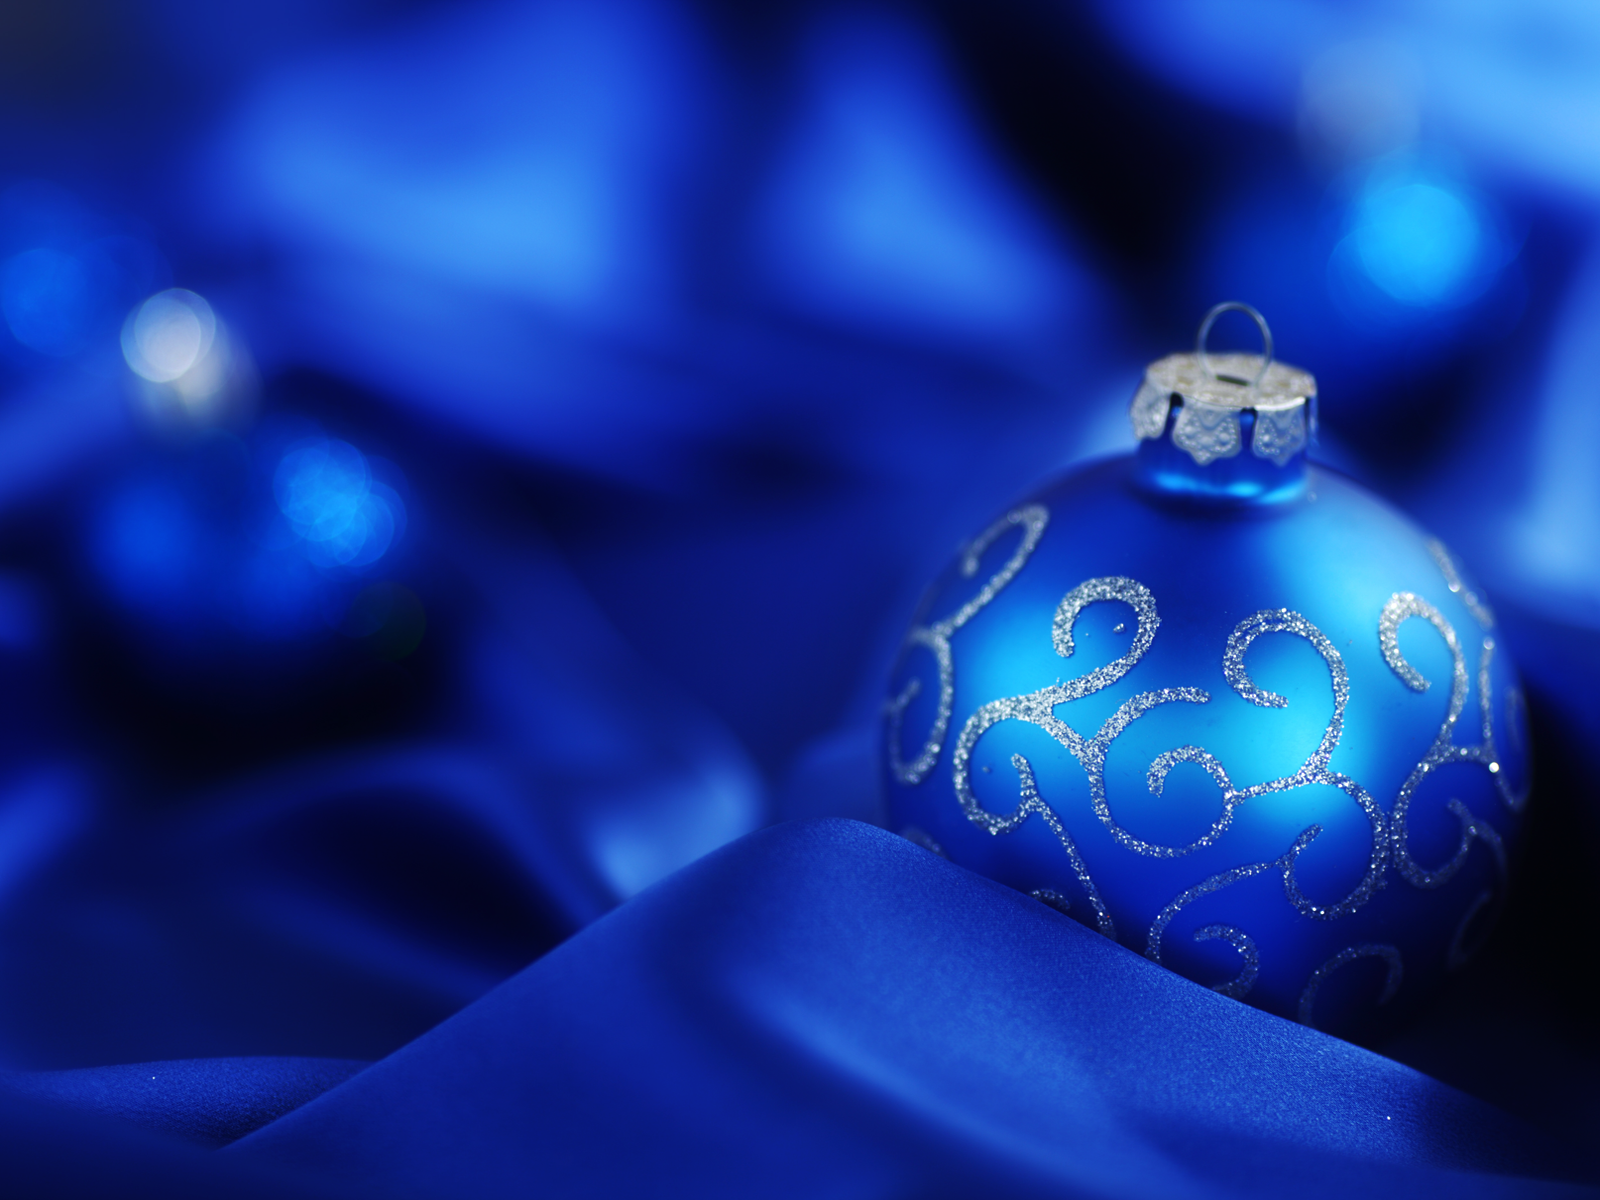 HD Holidays Wallpapers and Photos, 1600x1200 px | By Vivan Pauley